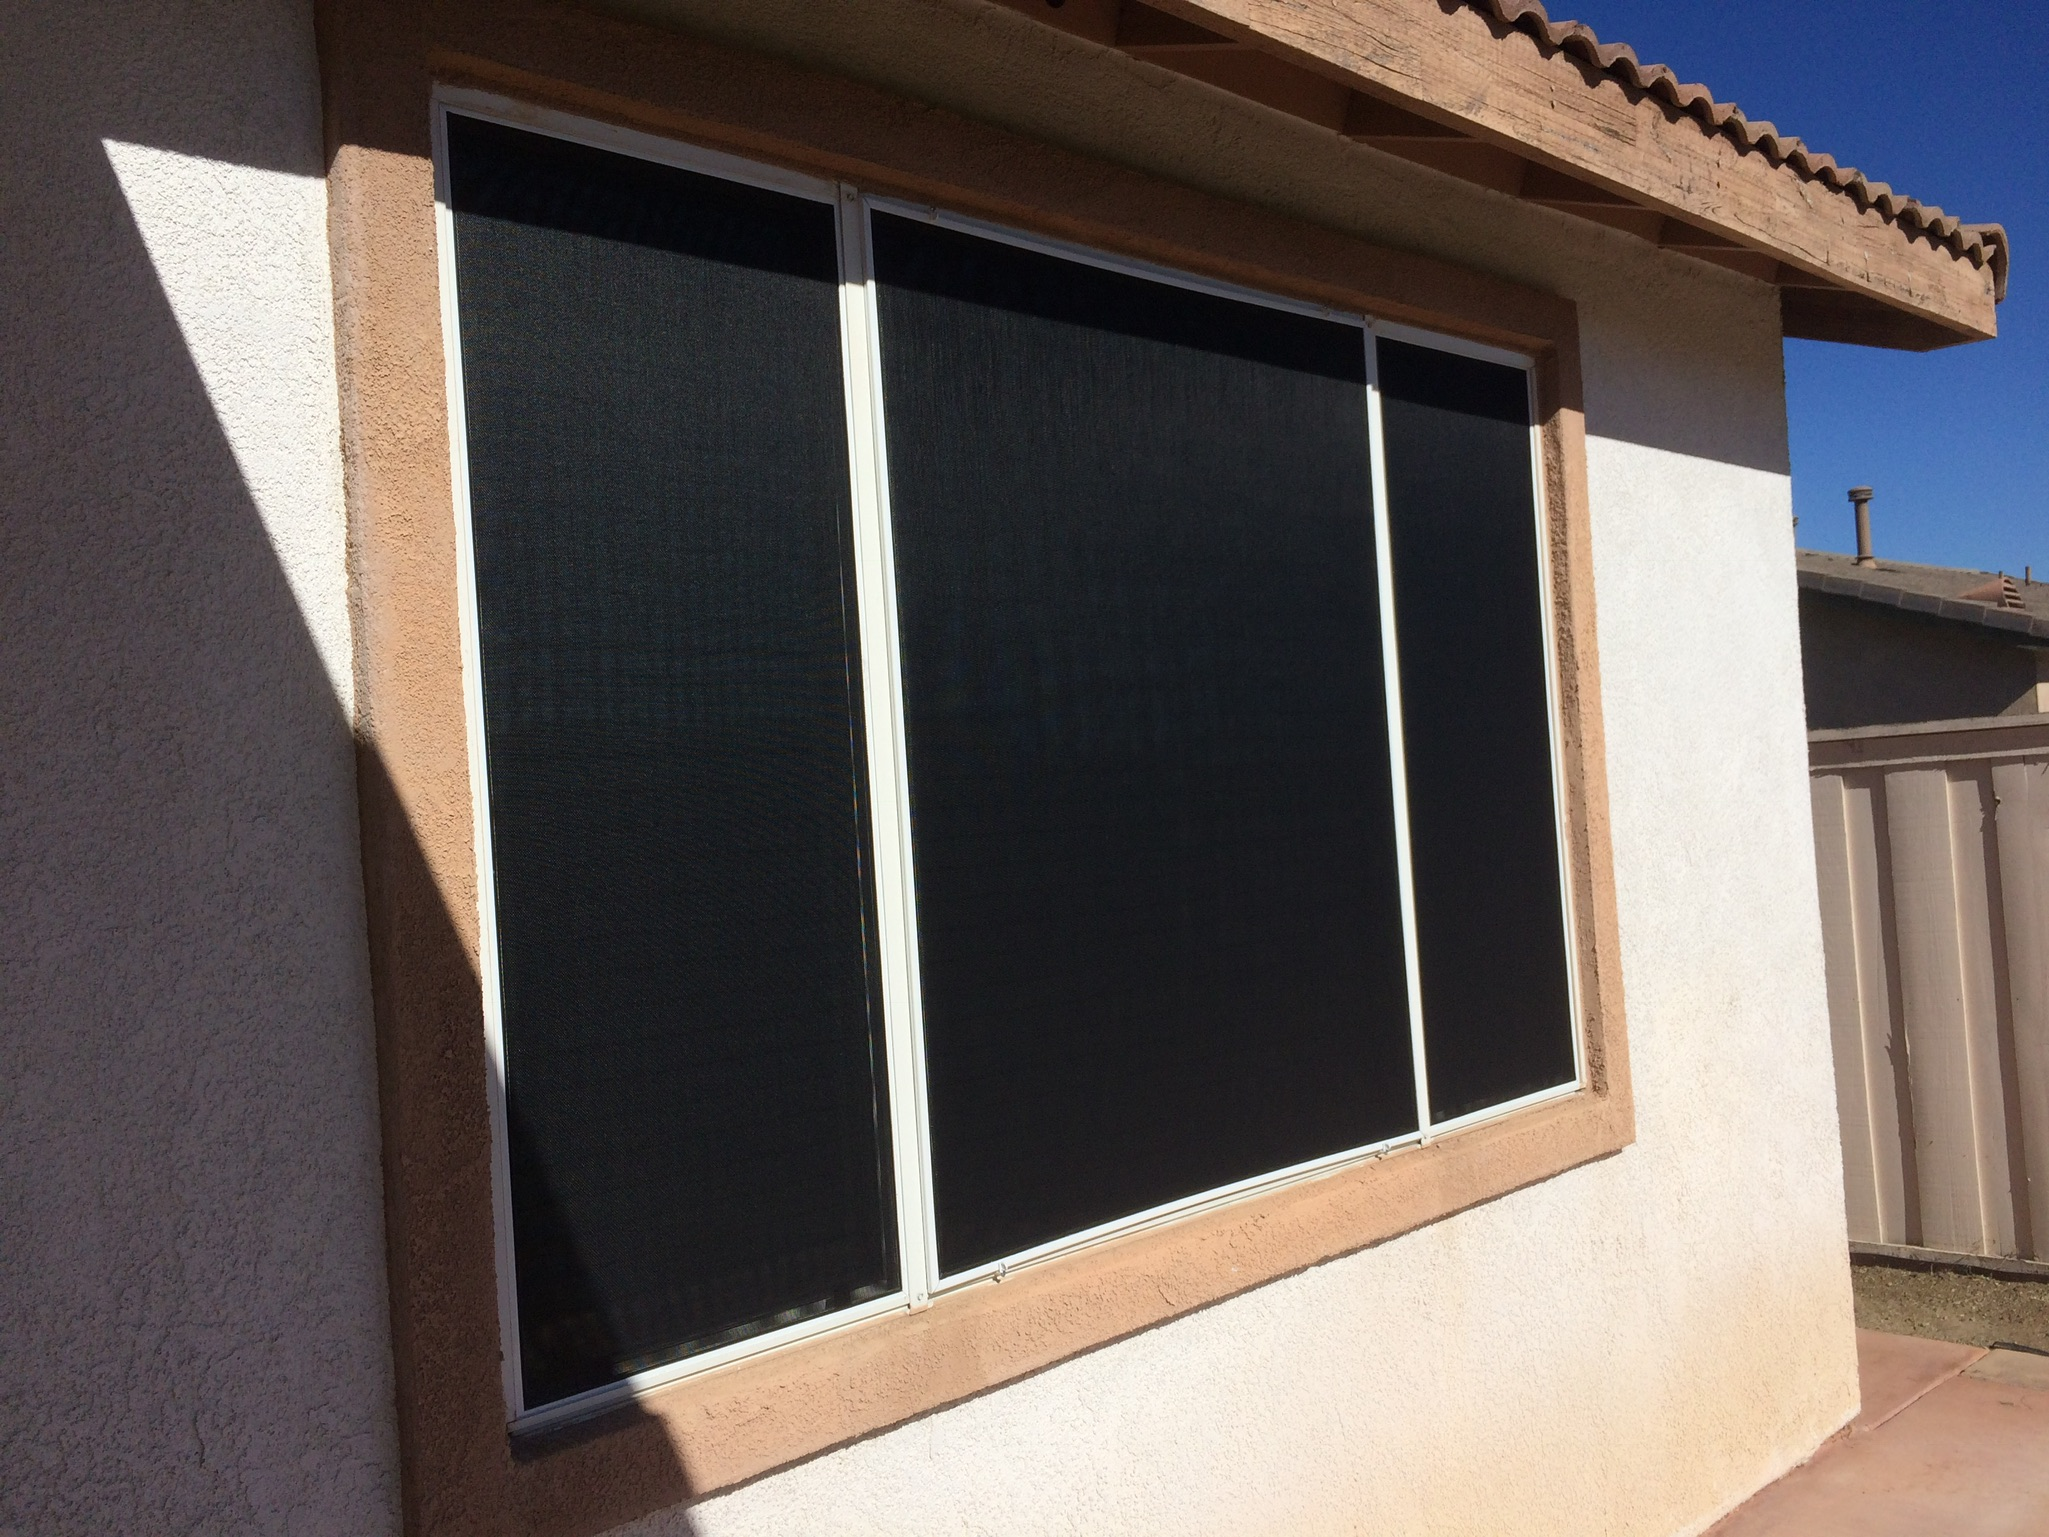 Suntex solar screens installed in Menifee 11/7/14